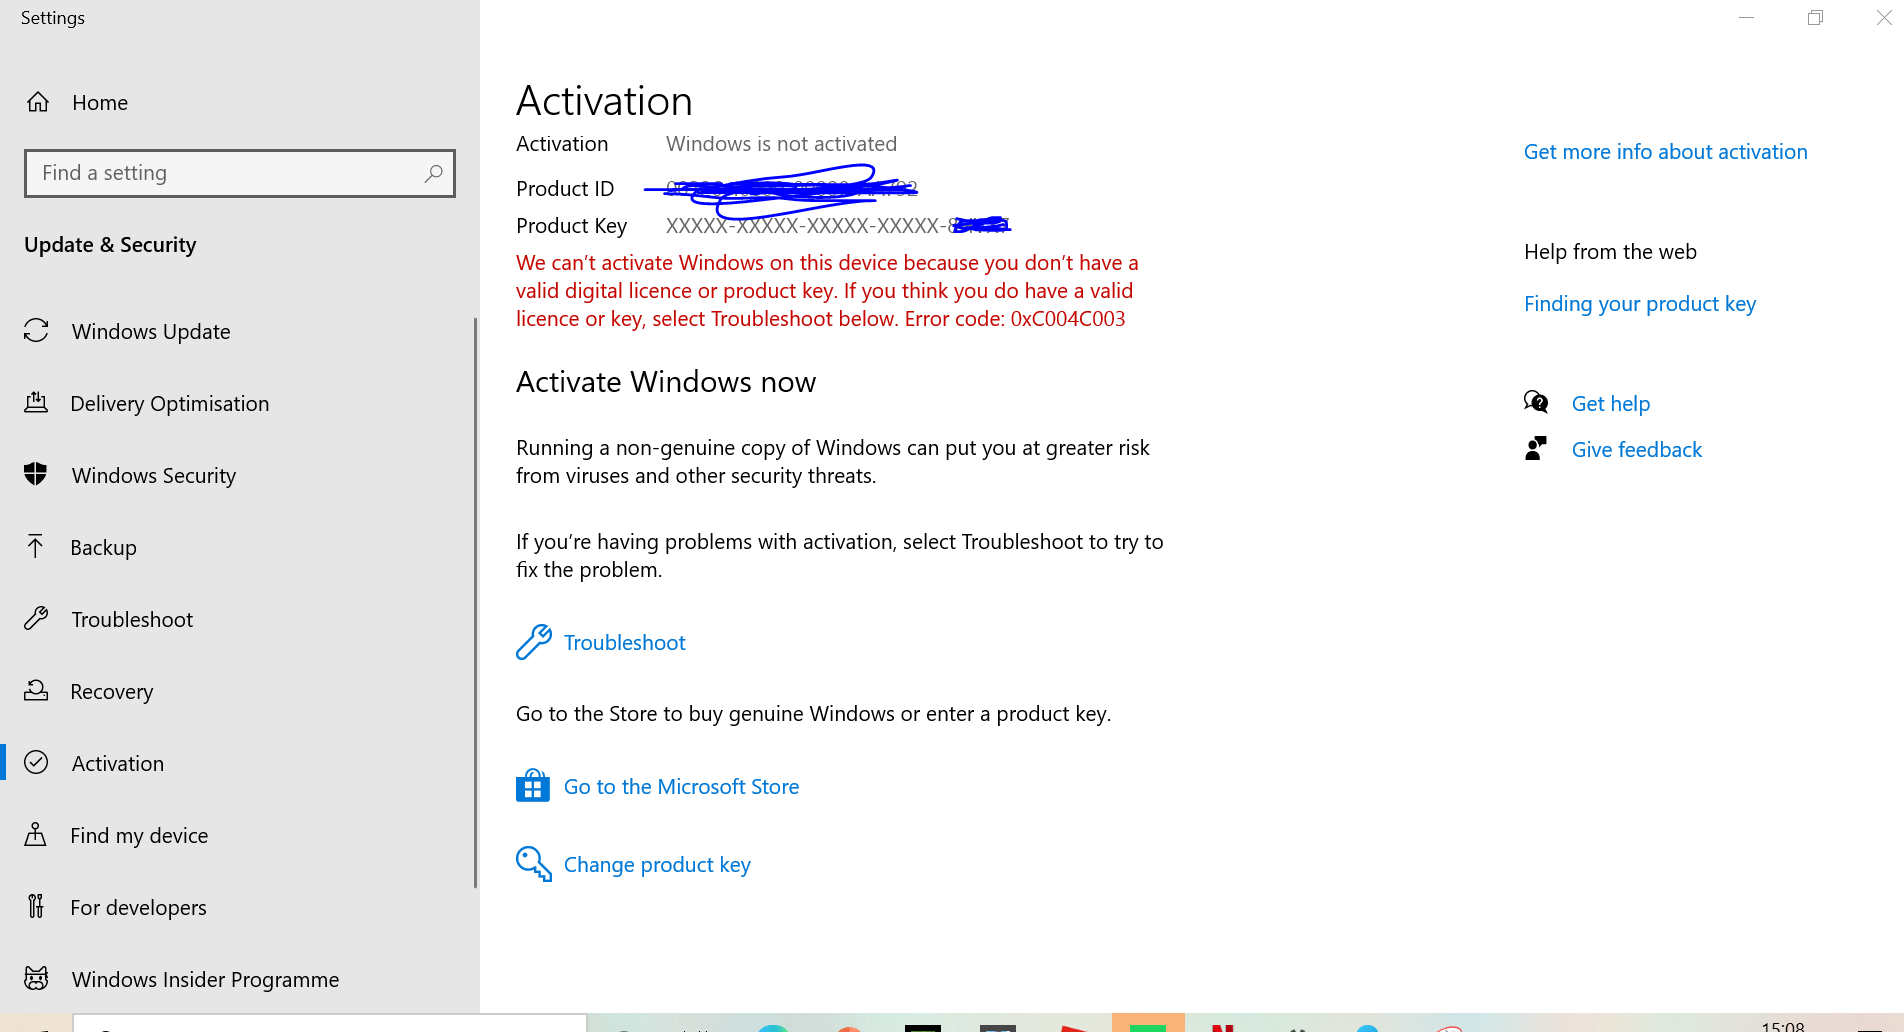 Trouble activating Windows 10? 207b591a-8a4b-4269-af27-73645a4bed33?upload=true.png